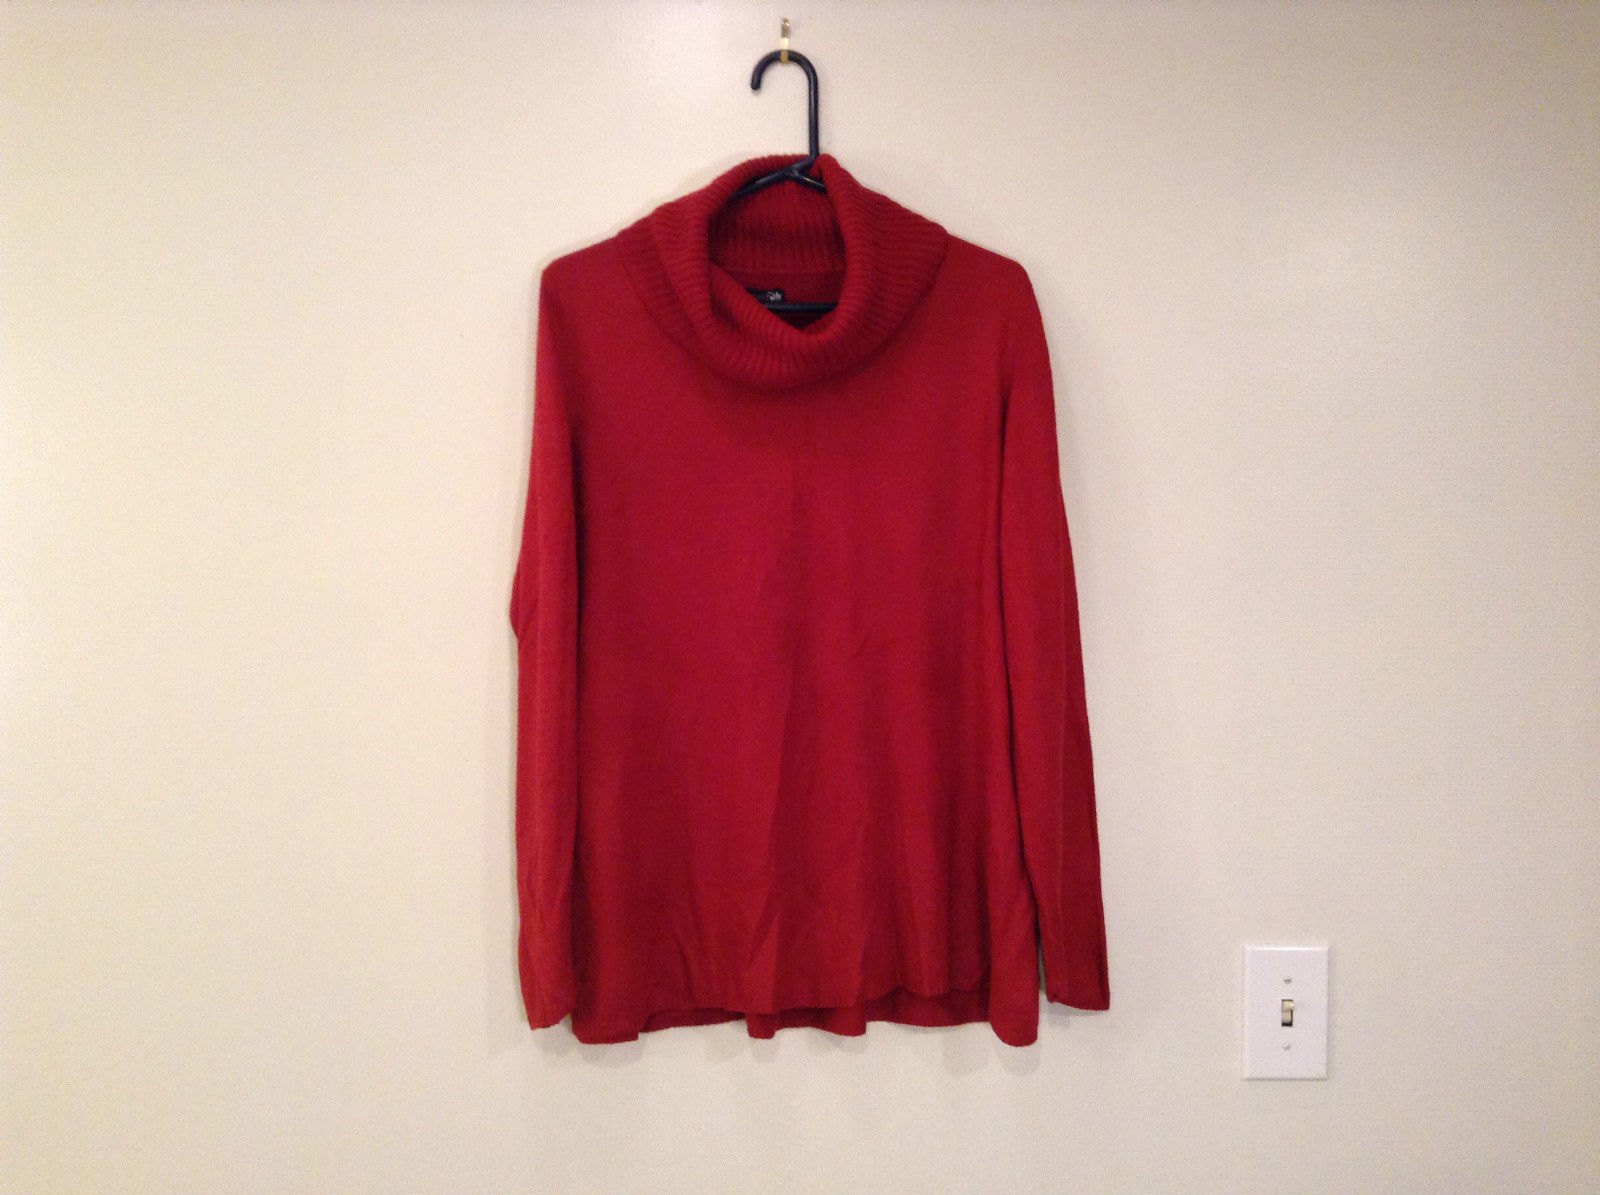 Brick Red East 5th Long Sleeve Turtleneck Top 100Percent Acrylic Size 1X